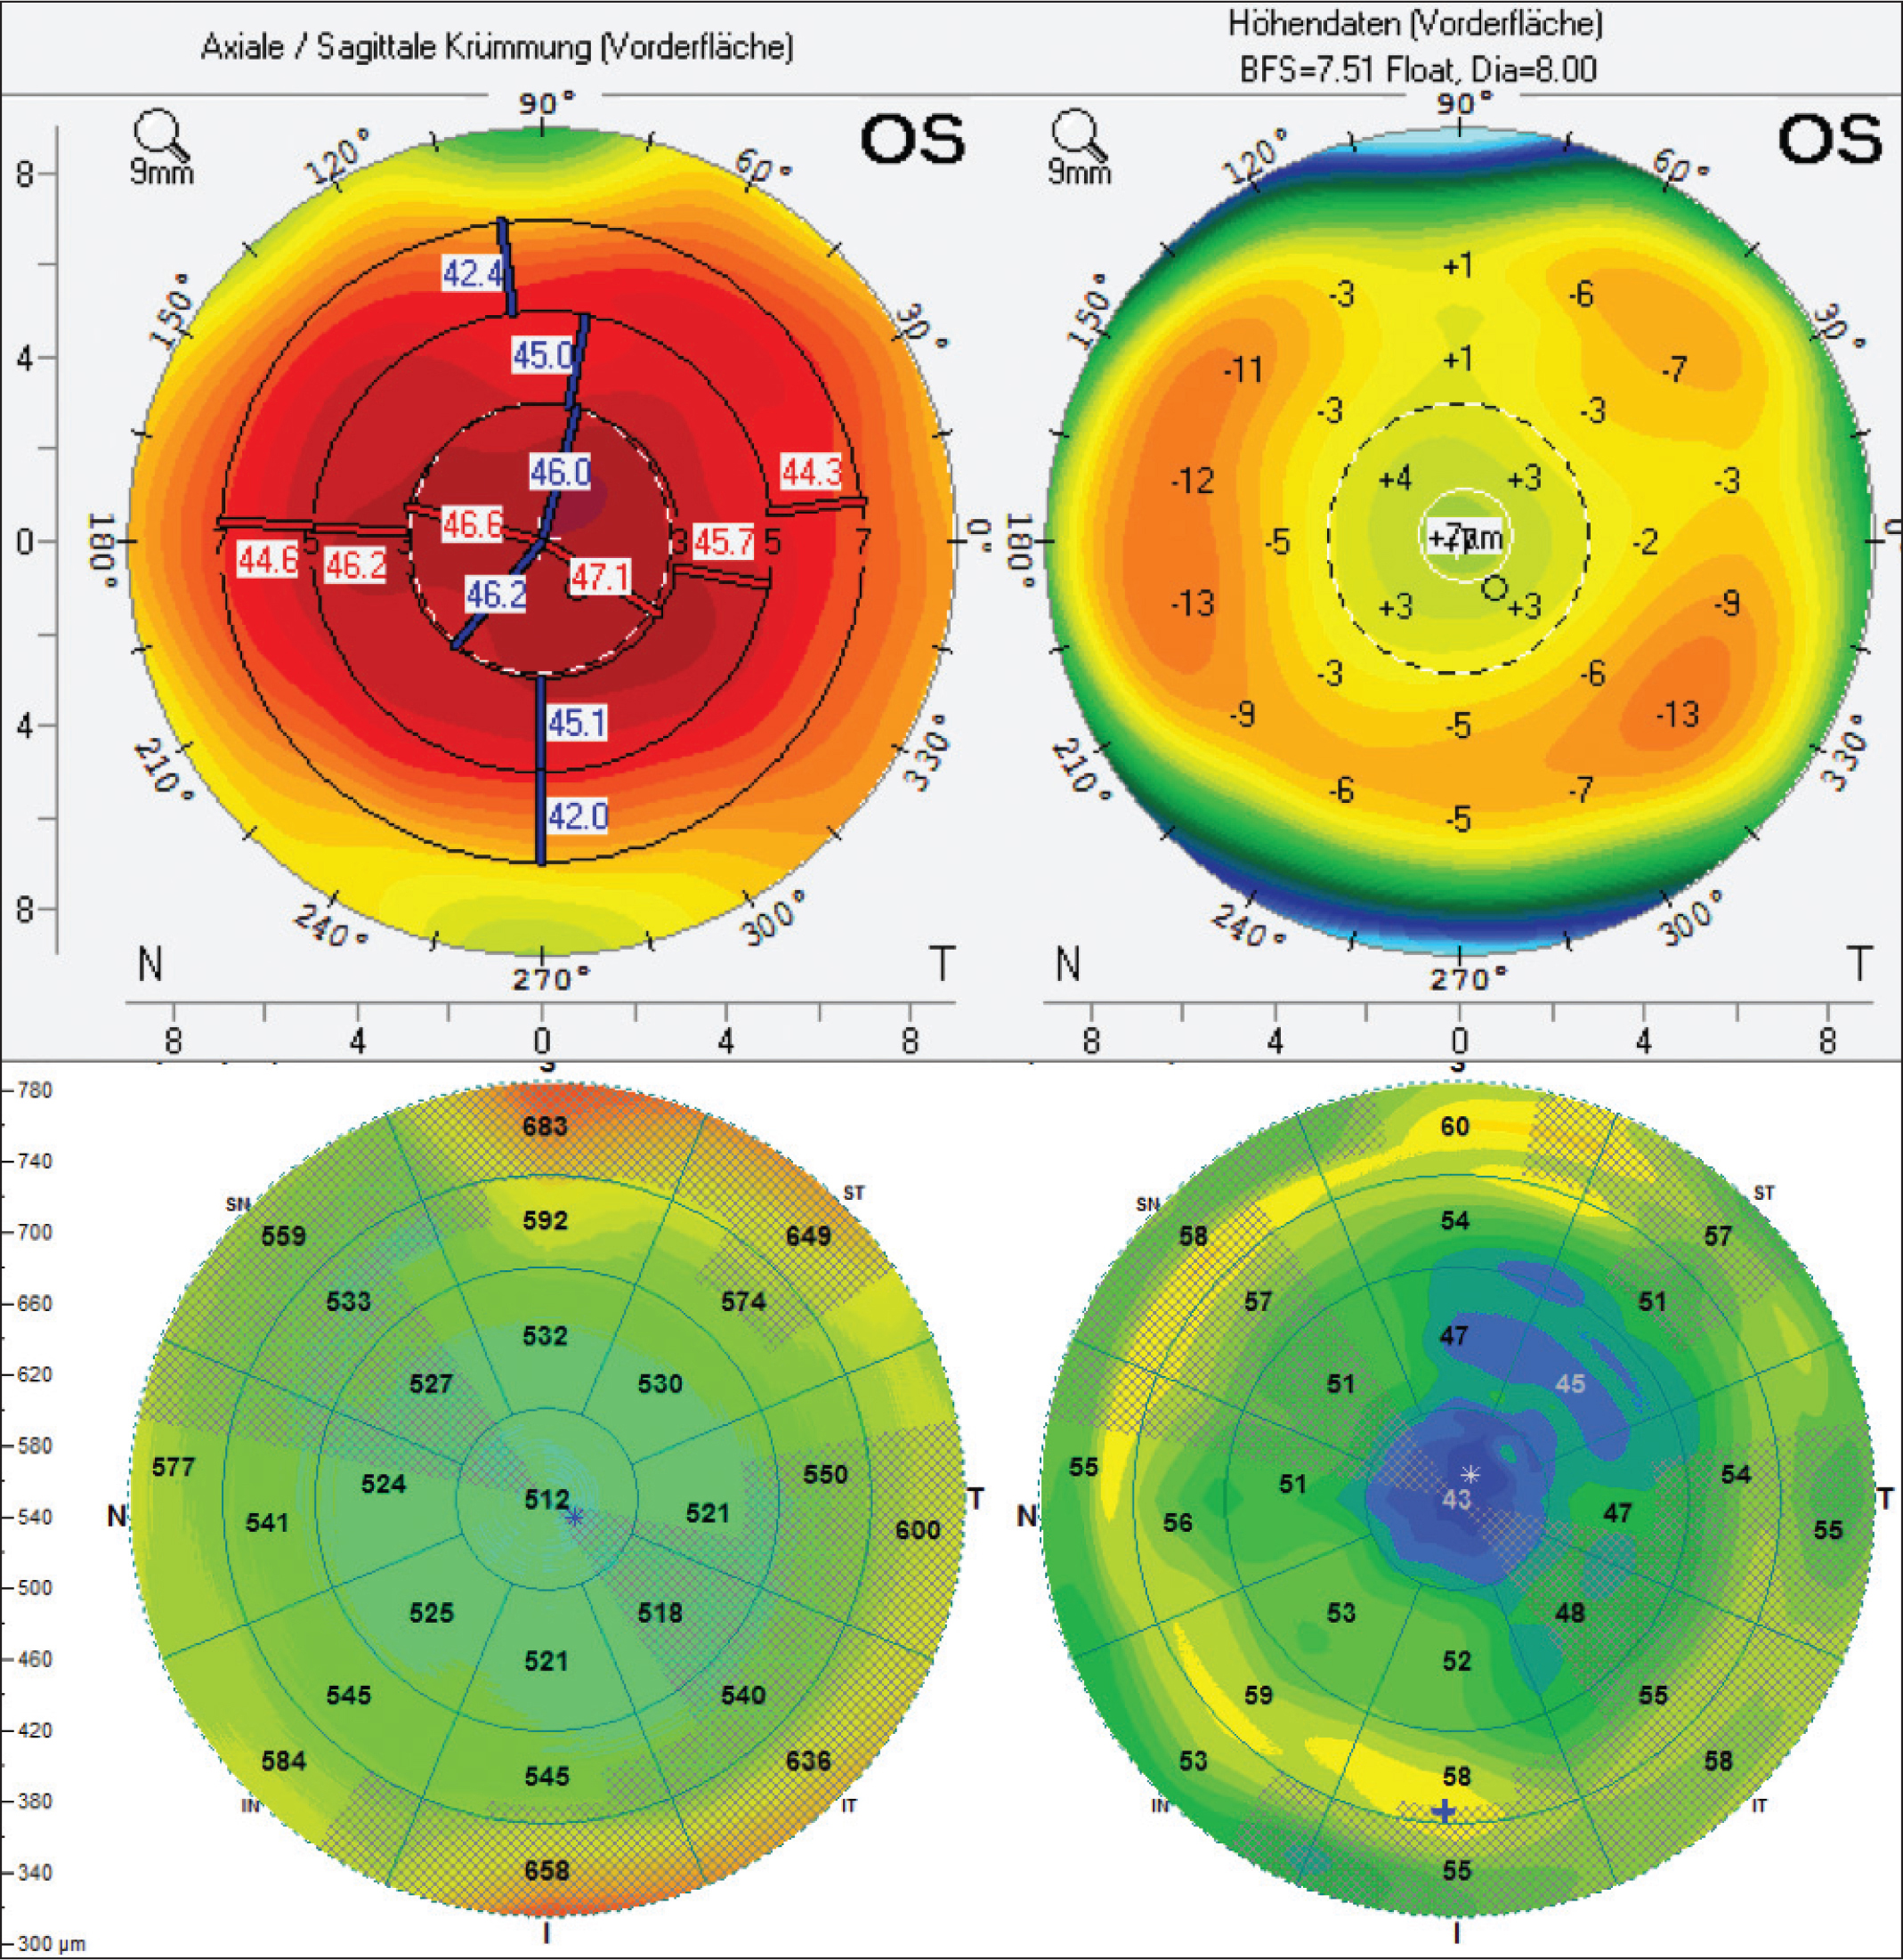 Example of epithelial masking of the central near addition zone 4 years after varifocal laser in situ keratomileusis. Axial power map and anterior float with central steepening in Pentacam (Oculus Optikgeräte GmbH, Wetzlar, Germany) examination (top row). Corresponding total corneal thickness map and epithelial thickness map (anterior segment optical coherence tomography, Avanti; Optovue, Fremont, CA) revealing epithelial thinning over the central near addition zone of 2-mm diameter (bottom row). Minimum epithelial thickness is 39 µm (marked with *) and maximum epithelial thickness is 61 µm (marked with +).